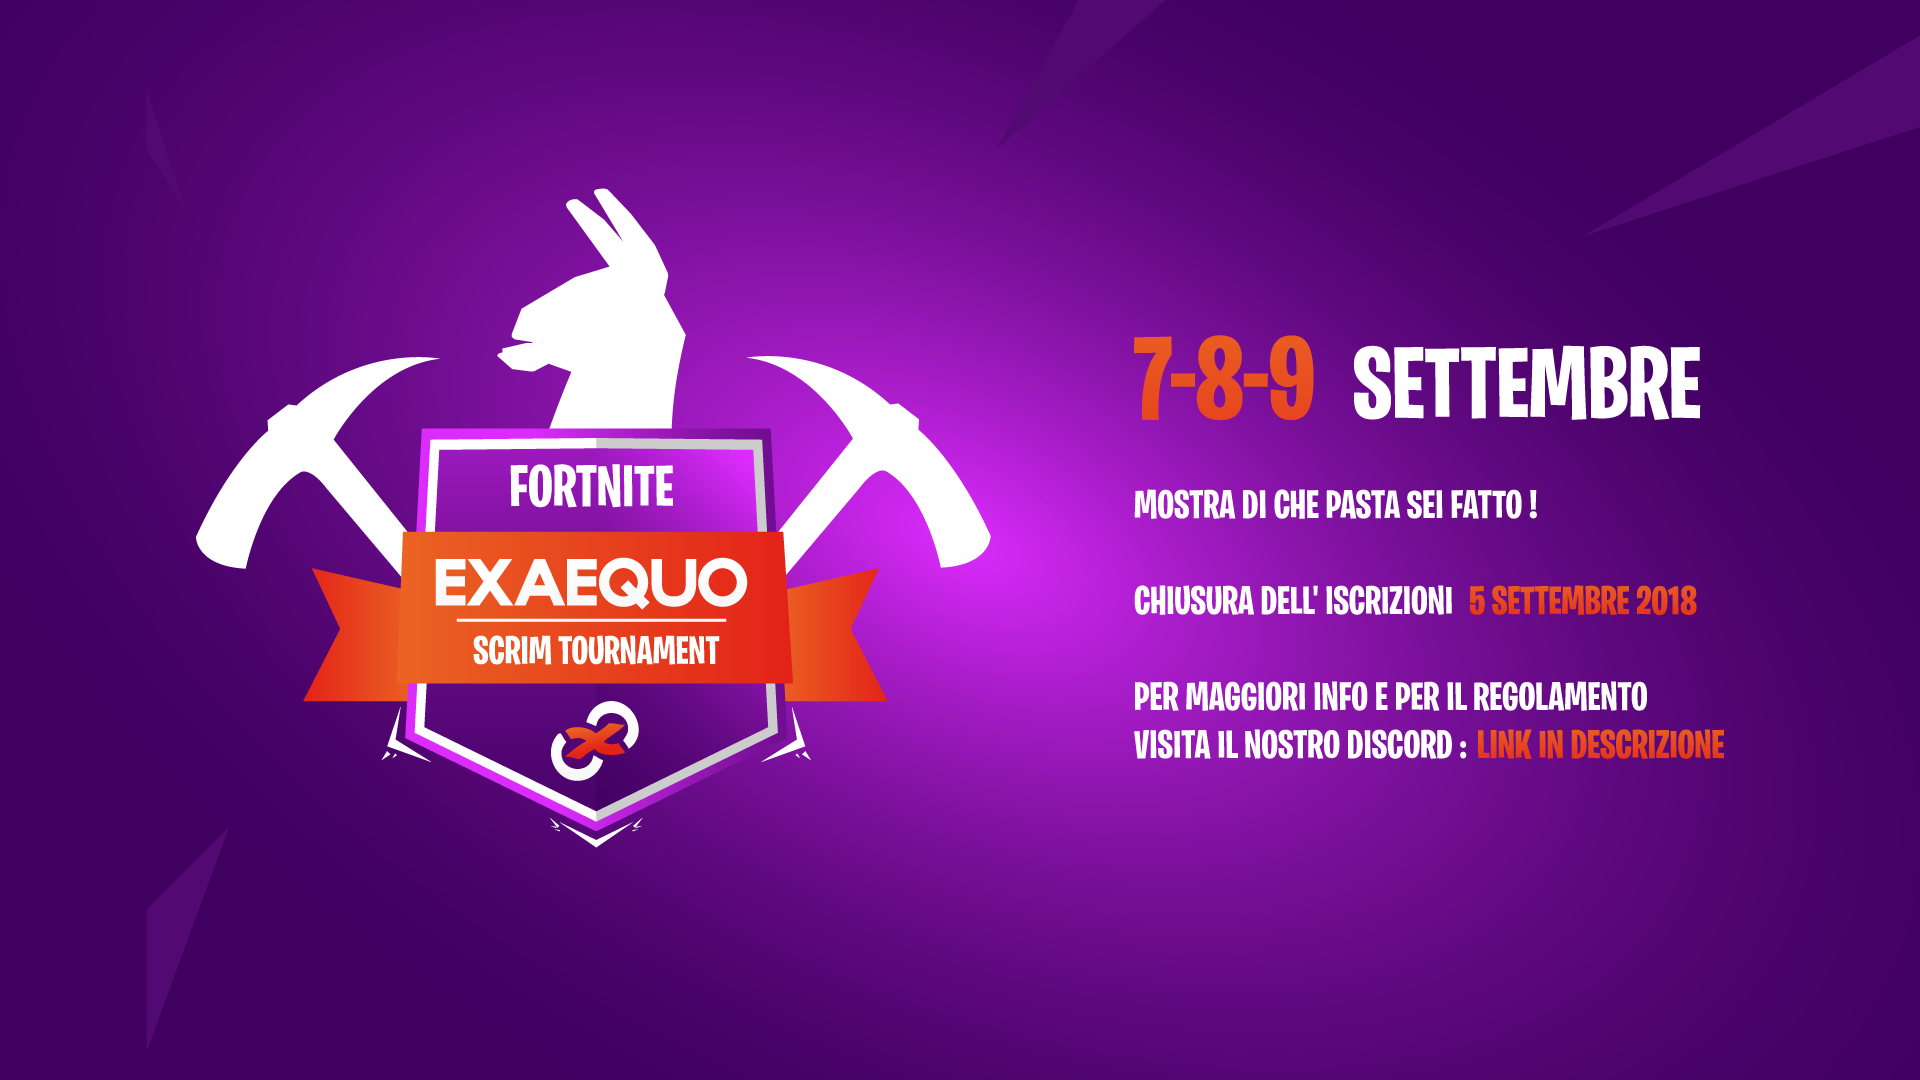 ExAequoItalia Fortnite - Scrim Tournament